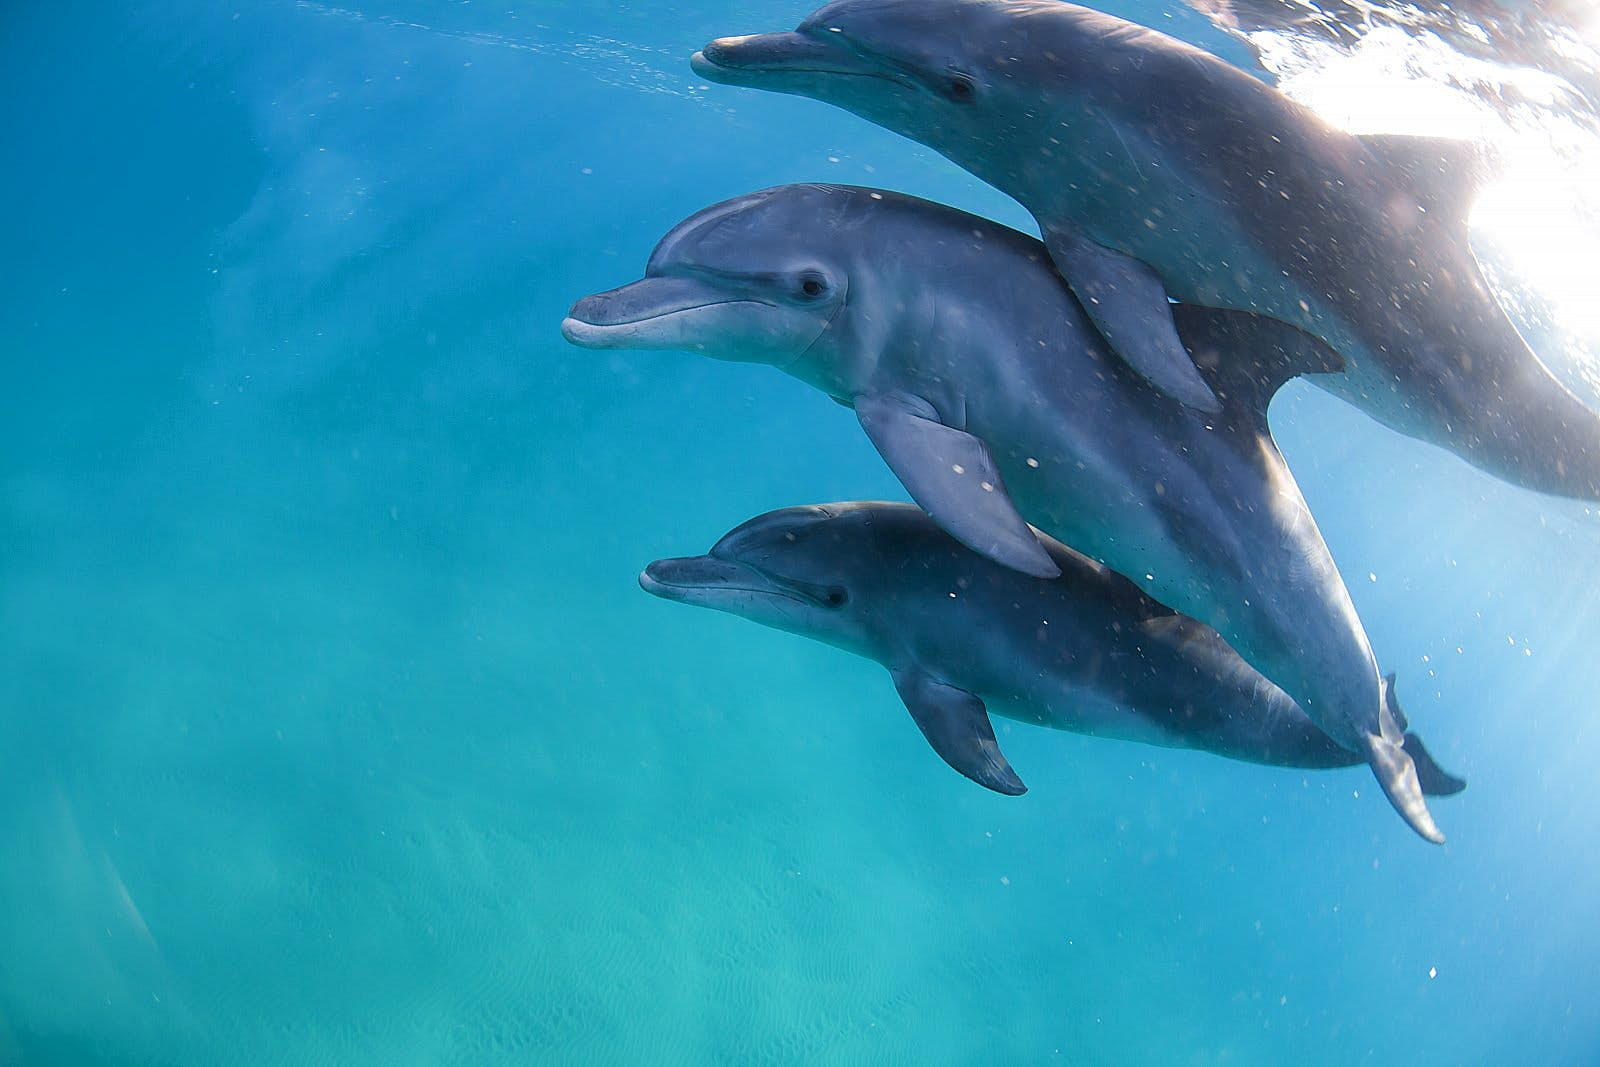 Three bottlenose dolphins swimming close together in clear water; each is bigger than the one below it.